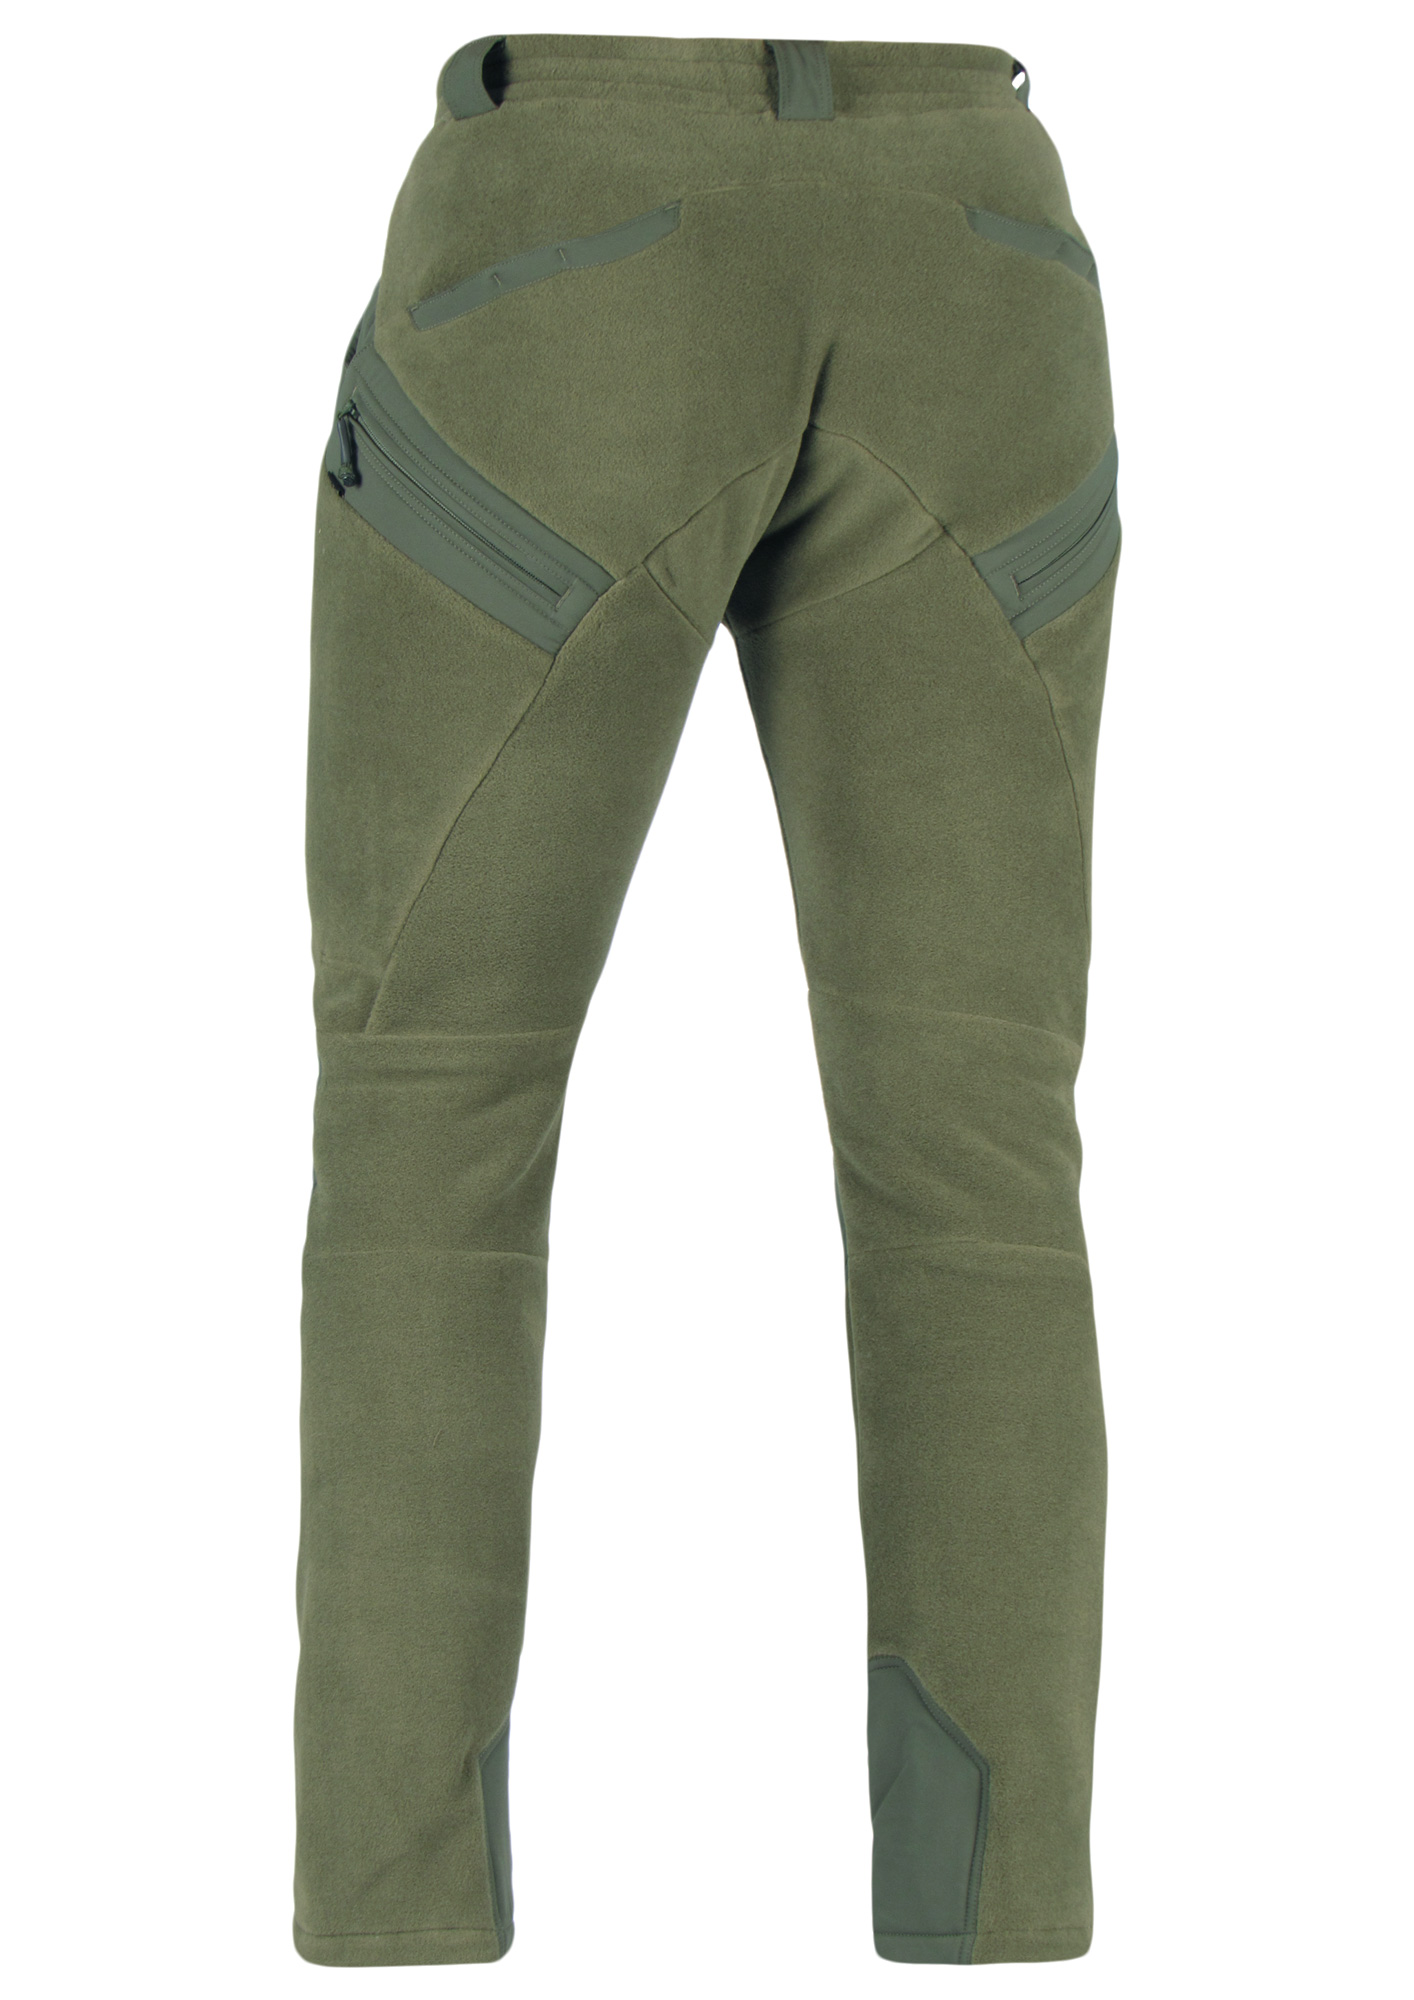 Winter field training pants